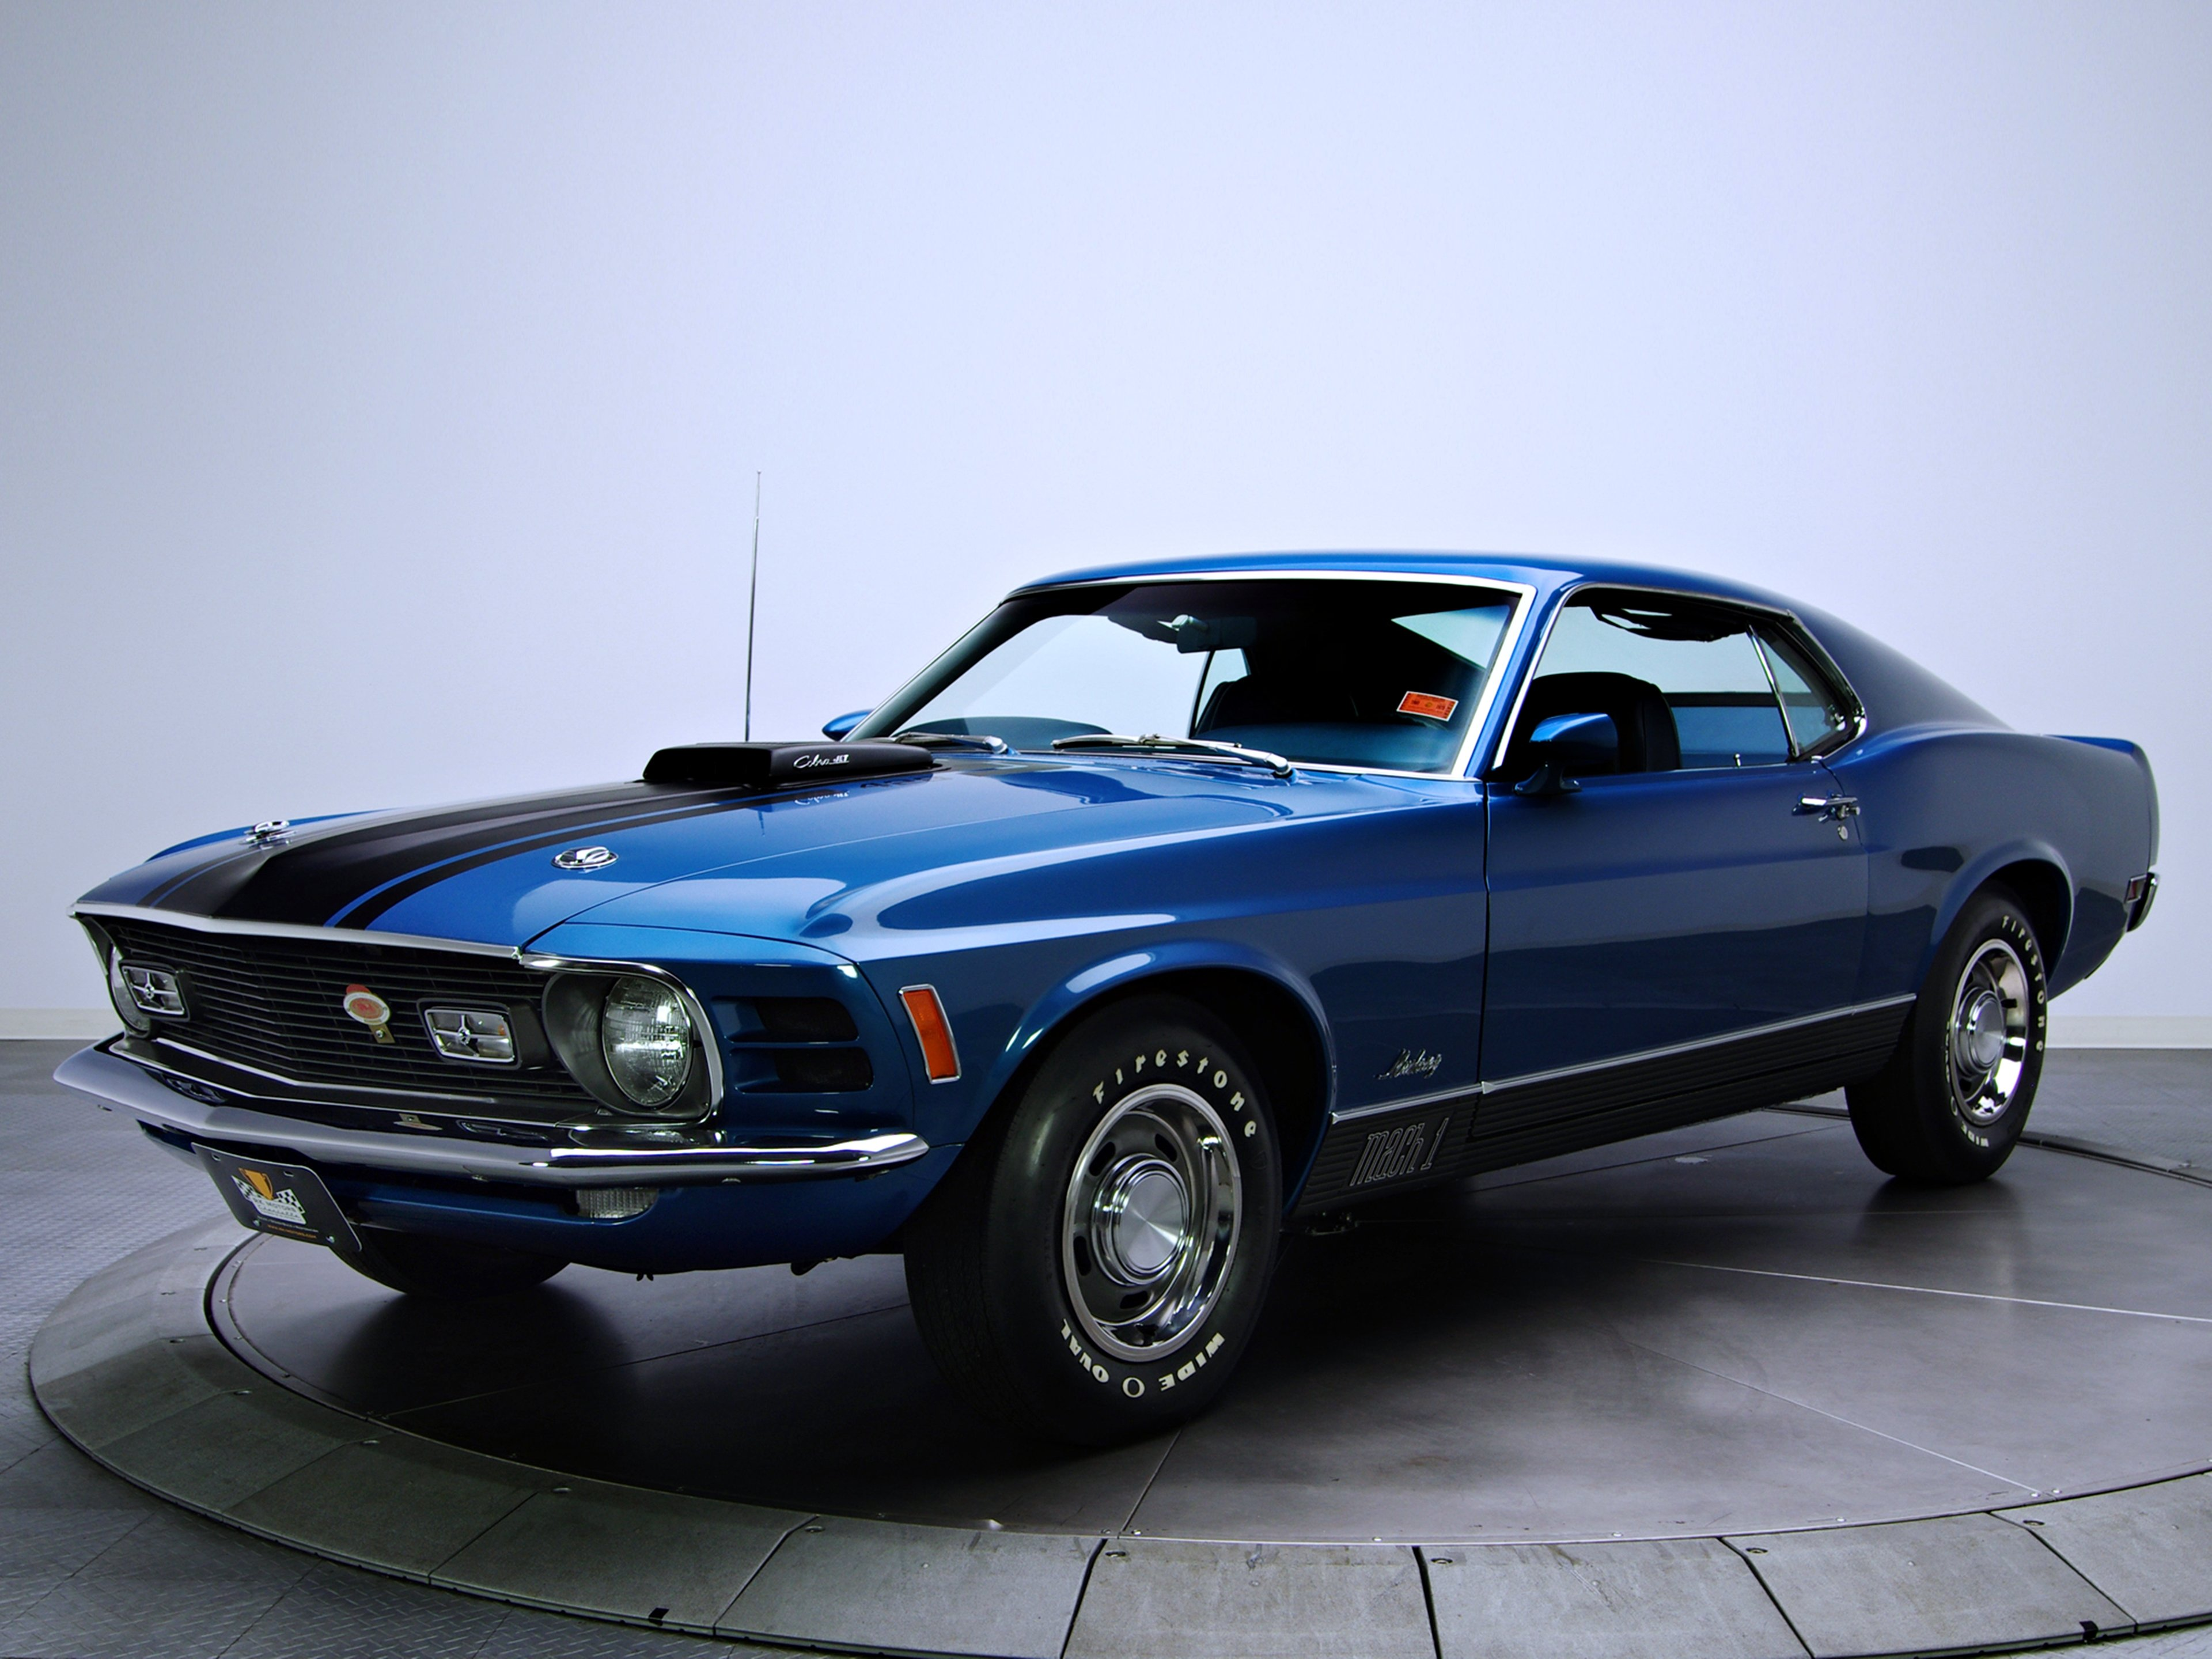 Cobra Jet Mustang >> Mustang mach-1-428 super-cobra-jet-1970 cars old classic motors speed blue wallpaper | 3840x2880 ...